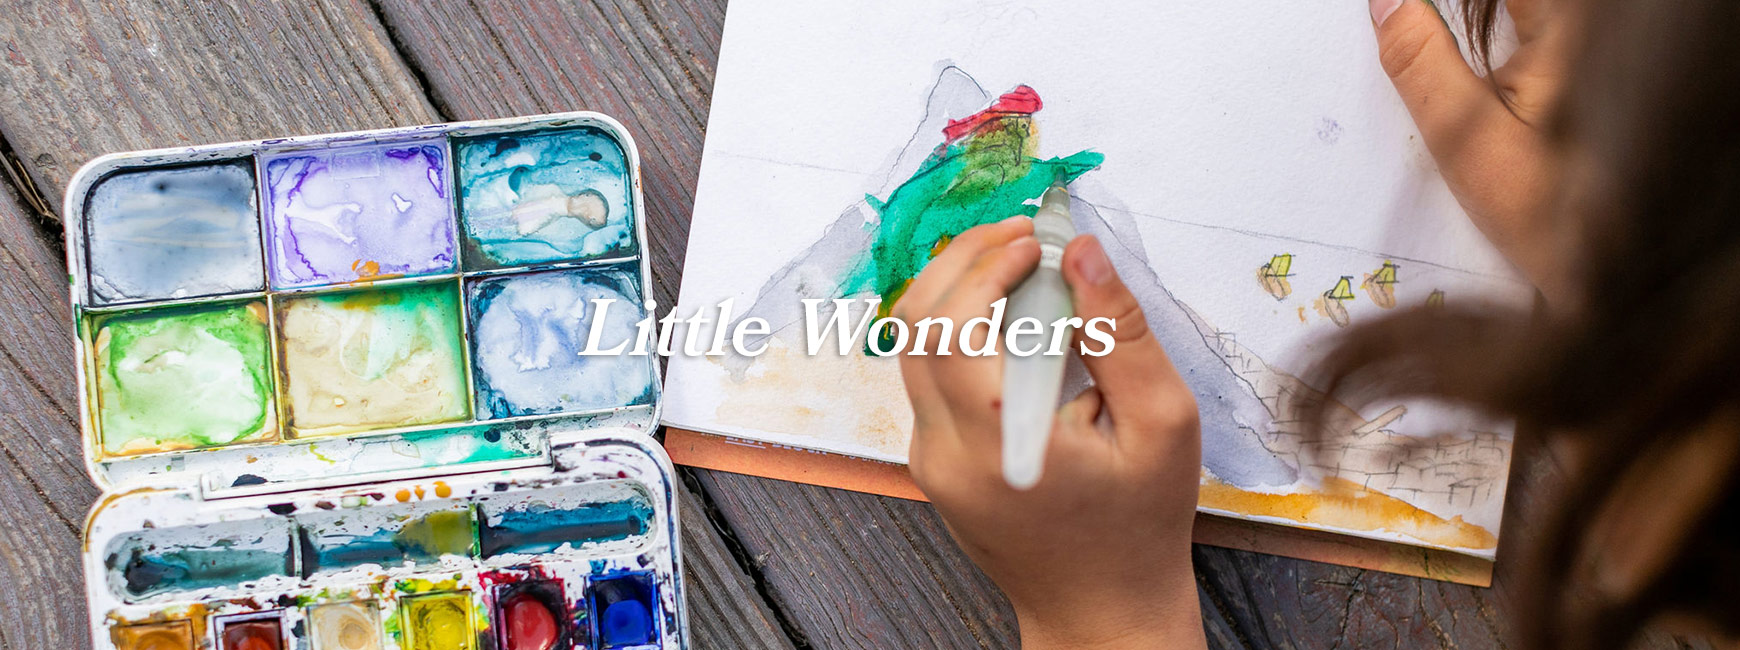 Little Wonders Art